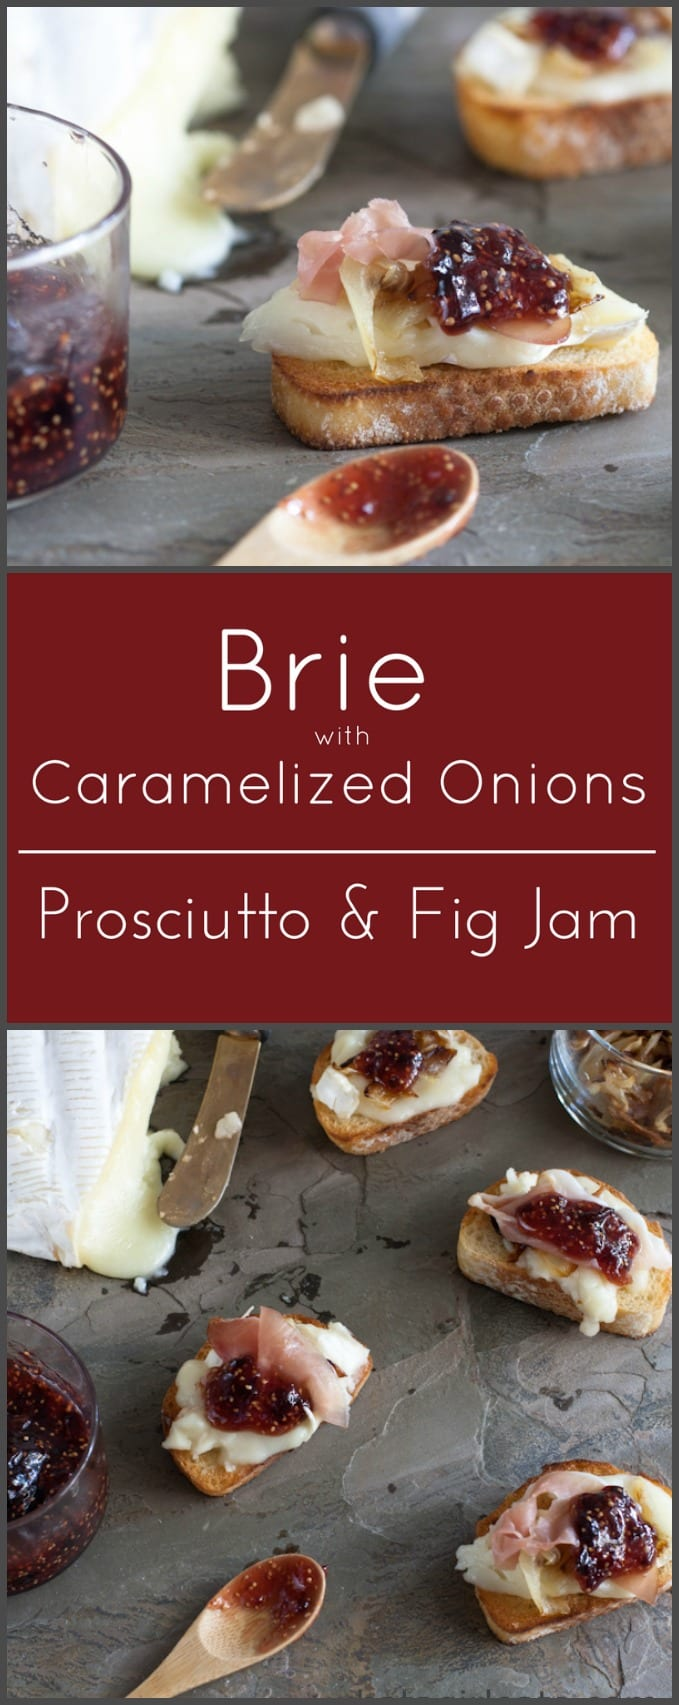 Brie and prosciutto bites with caramelized onions and fig jam.